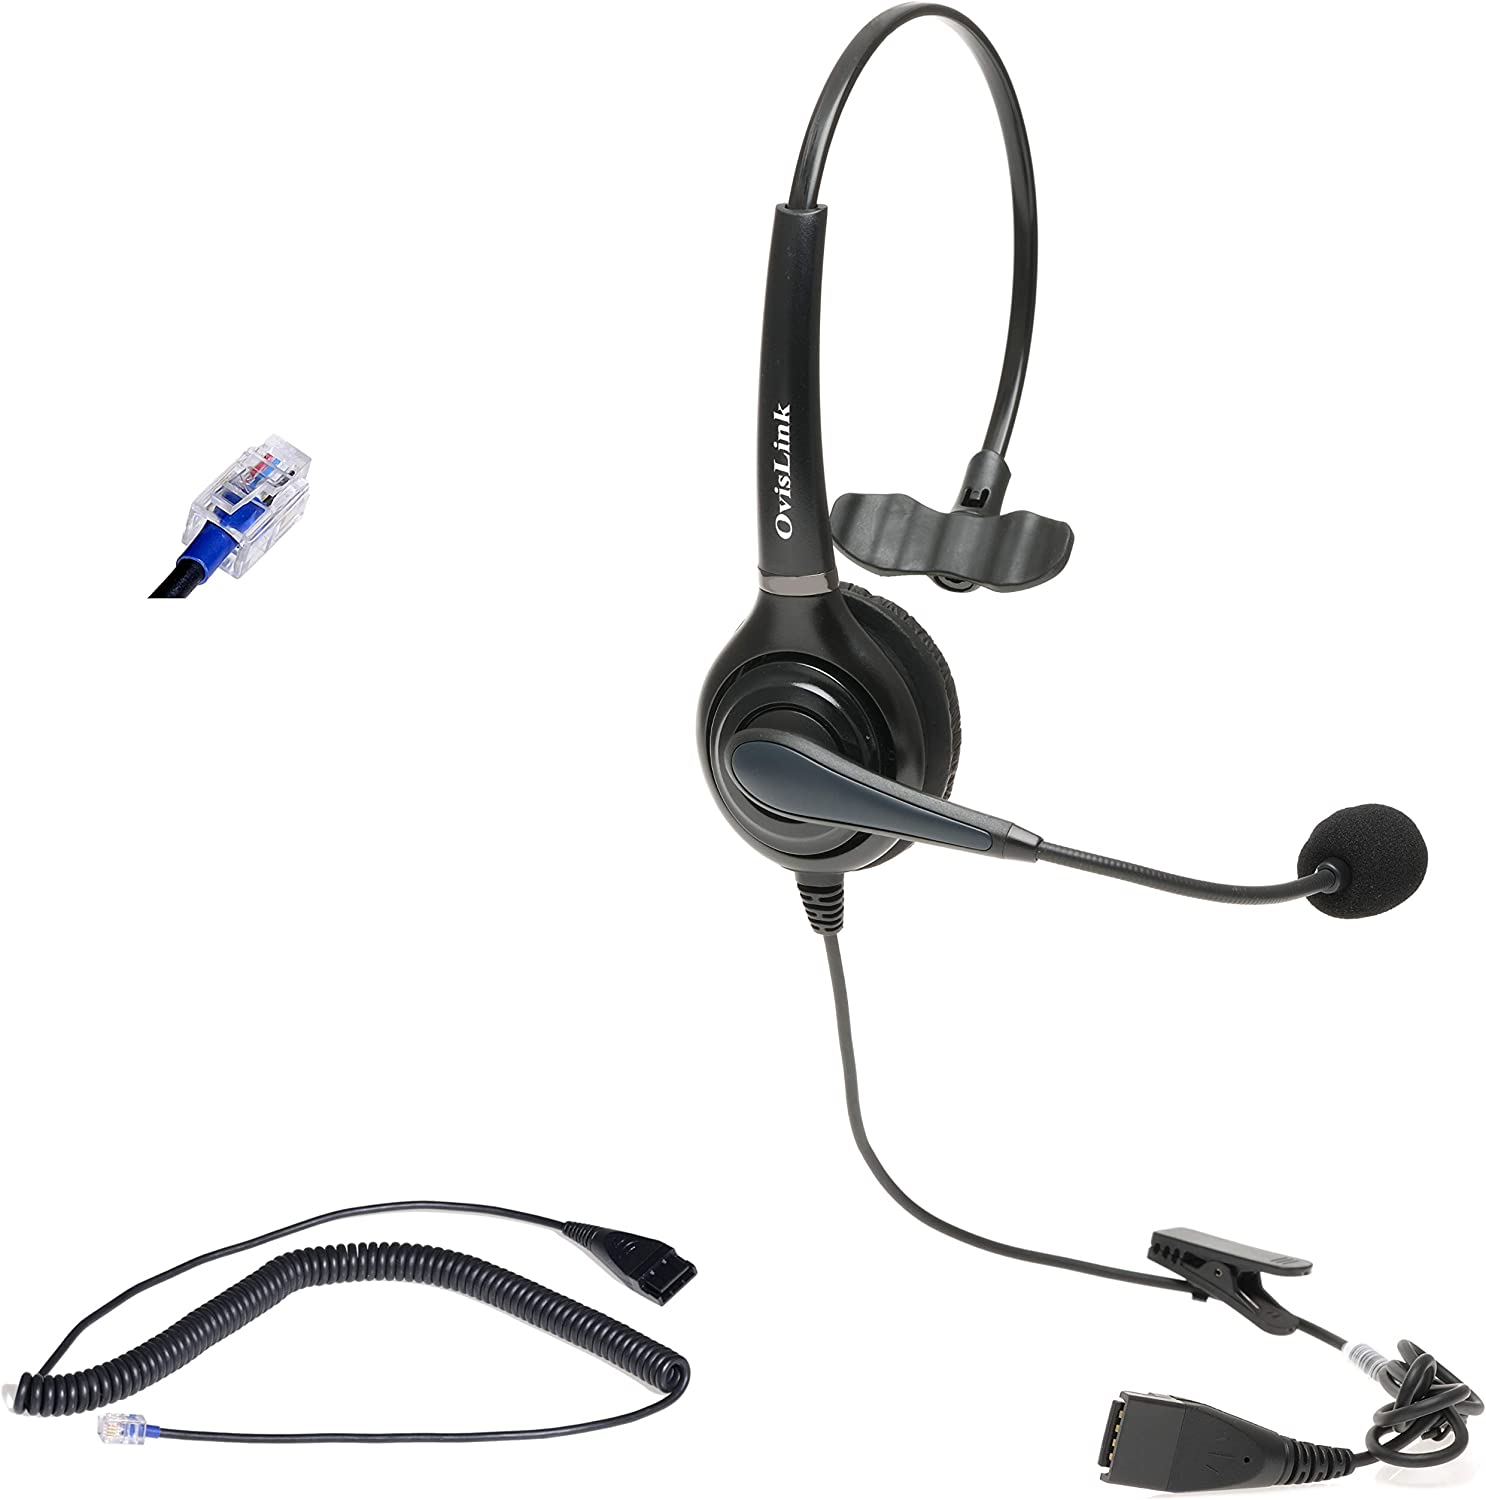 NEC Phone Headset   Flexible & Rotatable Microphone Headset   Noise Canceling Microphone Headset Compatible with All NEC Telephones   RJ9 Headset Quick Disconnect Cord Included   HD Voice